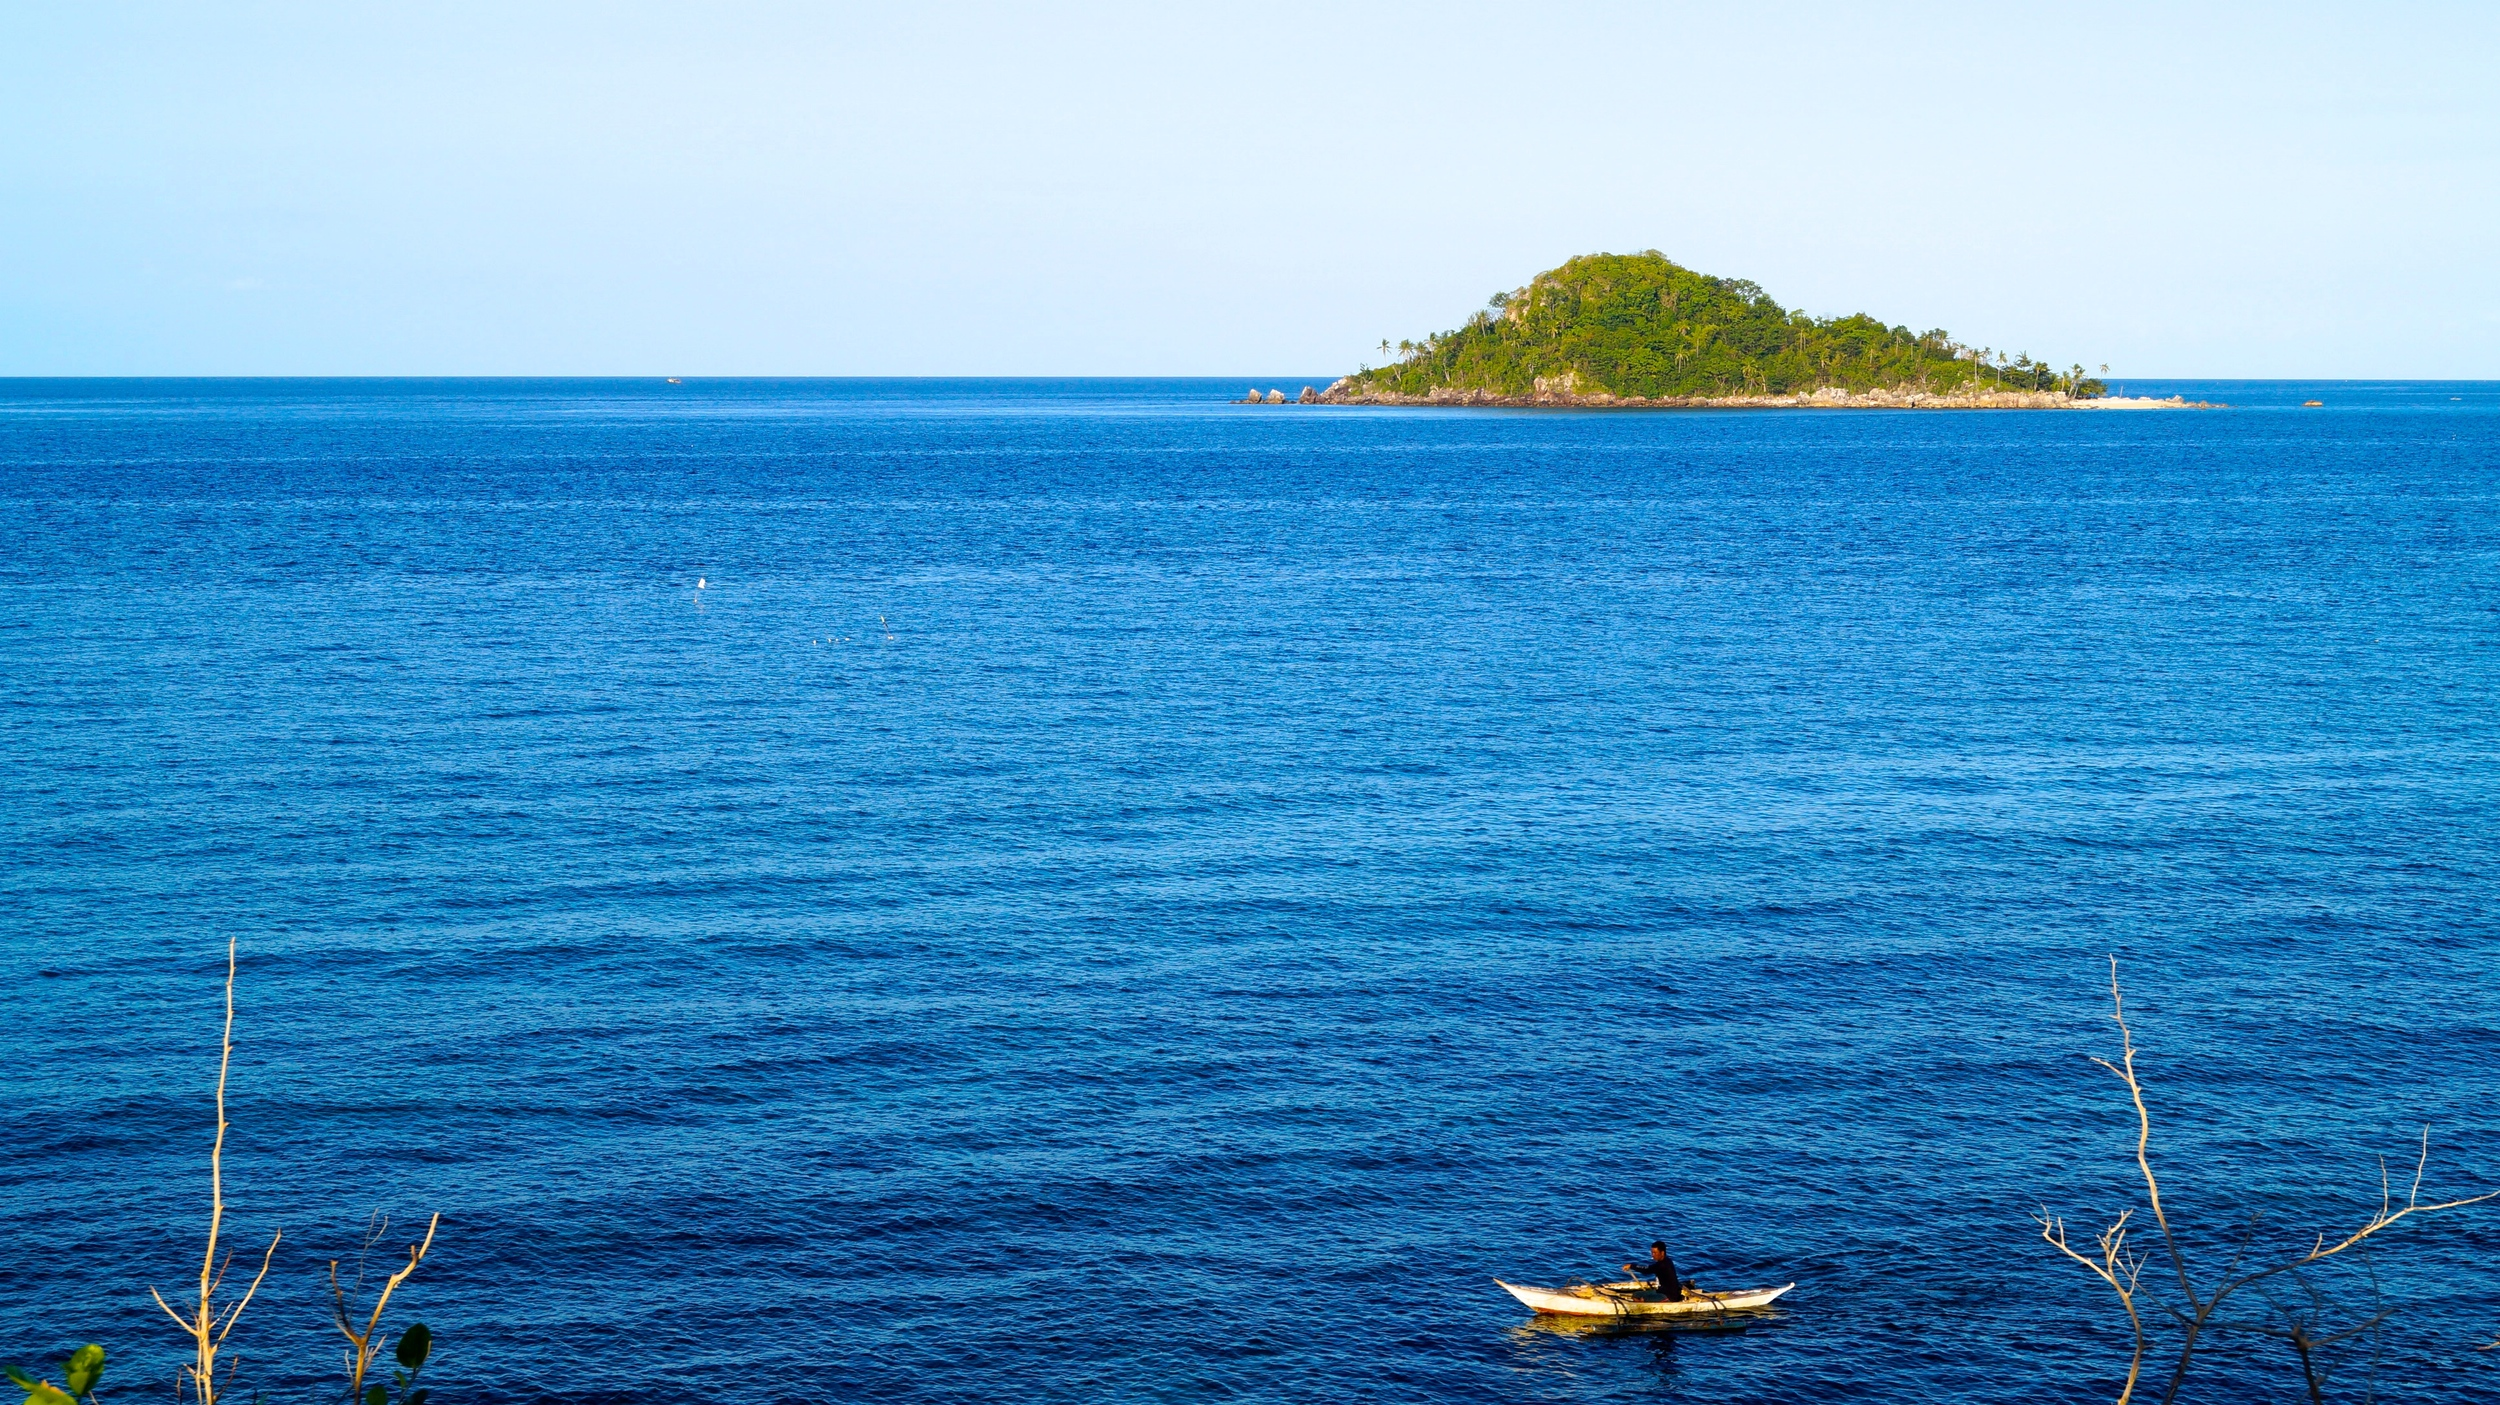 Islas de Gigantes, Visayan Sea, Bangka Fisherman - illumelation.com